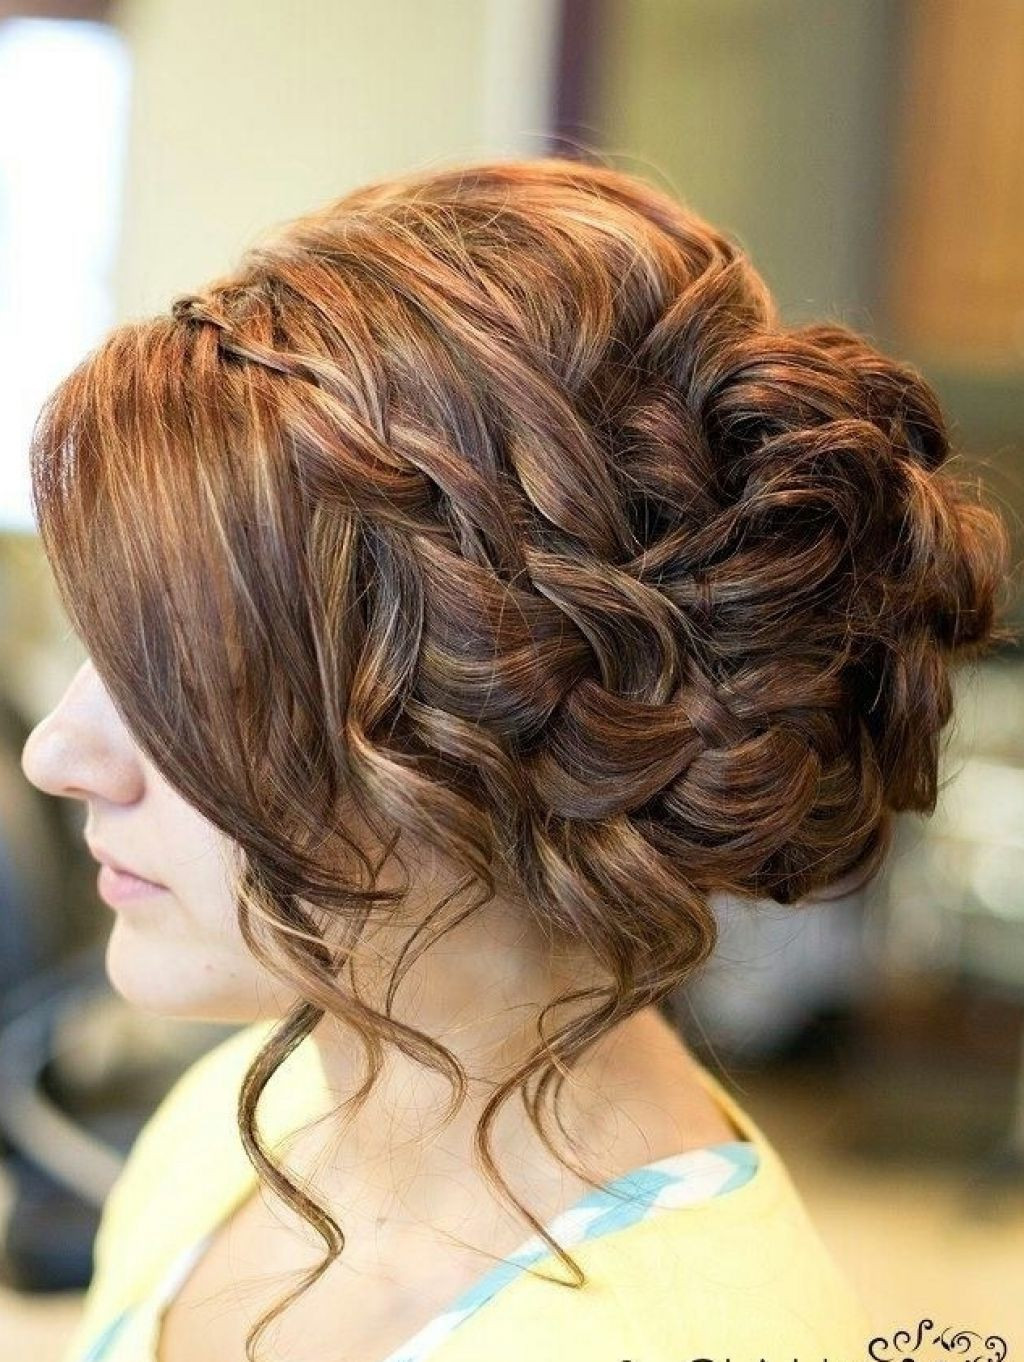 Updo Prom Hairstyles  14 Prom Hairstyles for Long Hair that are Simply Adorable